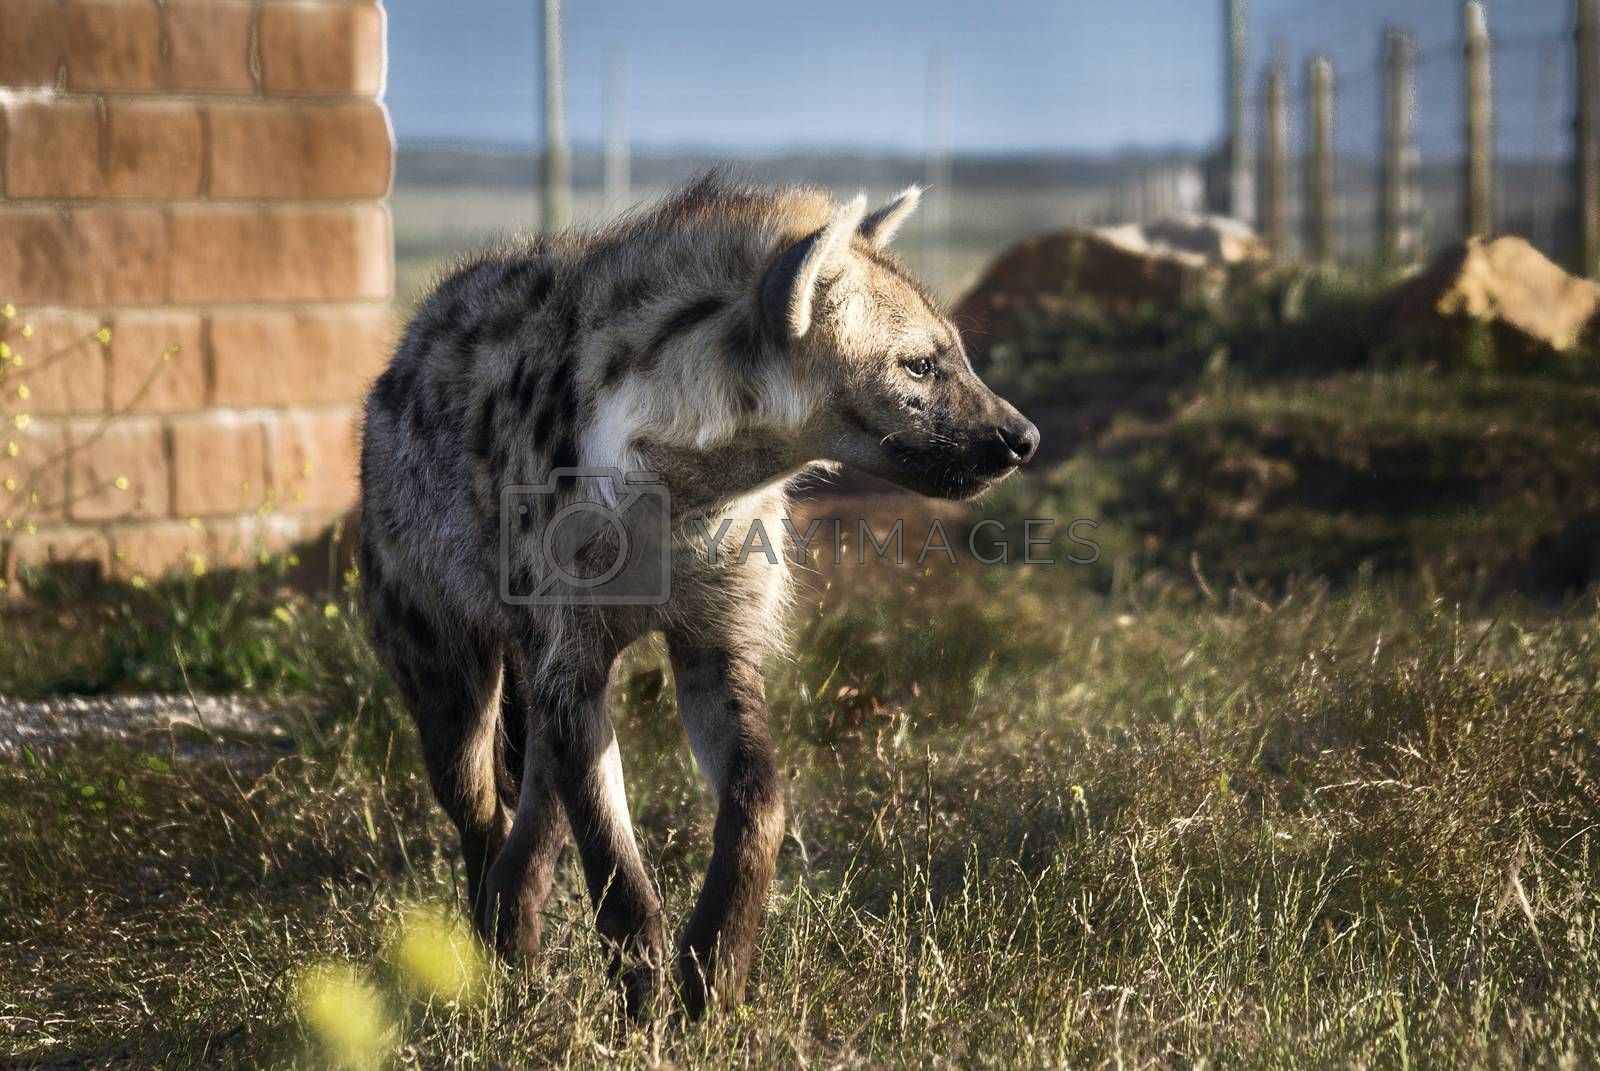 An African painted wild dog (Lycaon pictus) in a wildlife park in South Africa